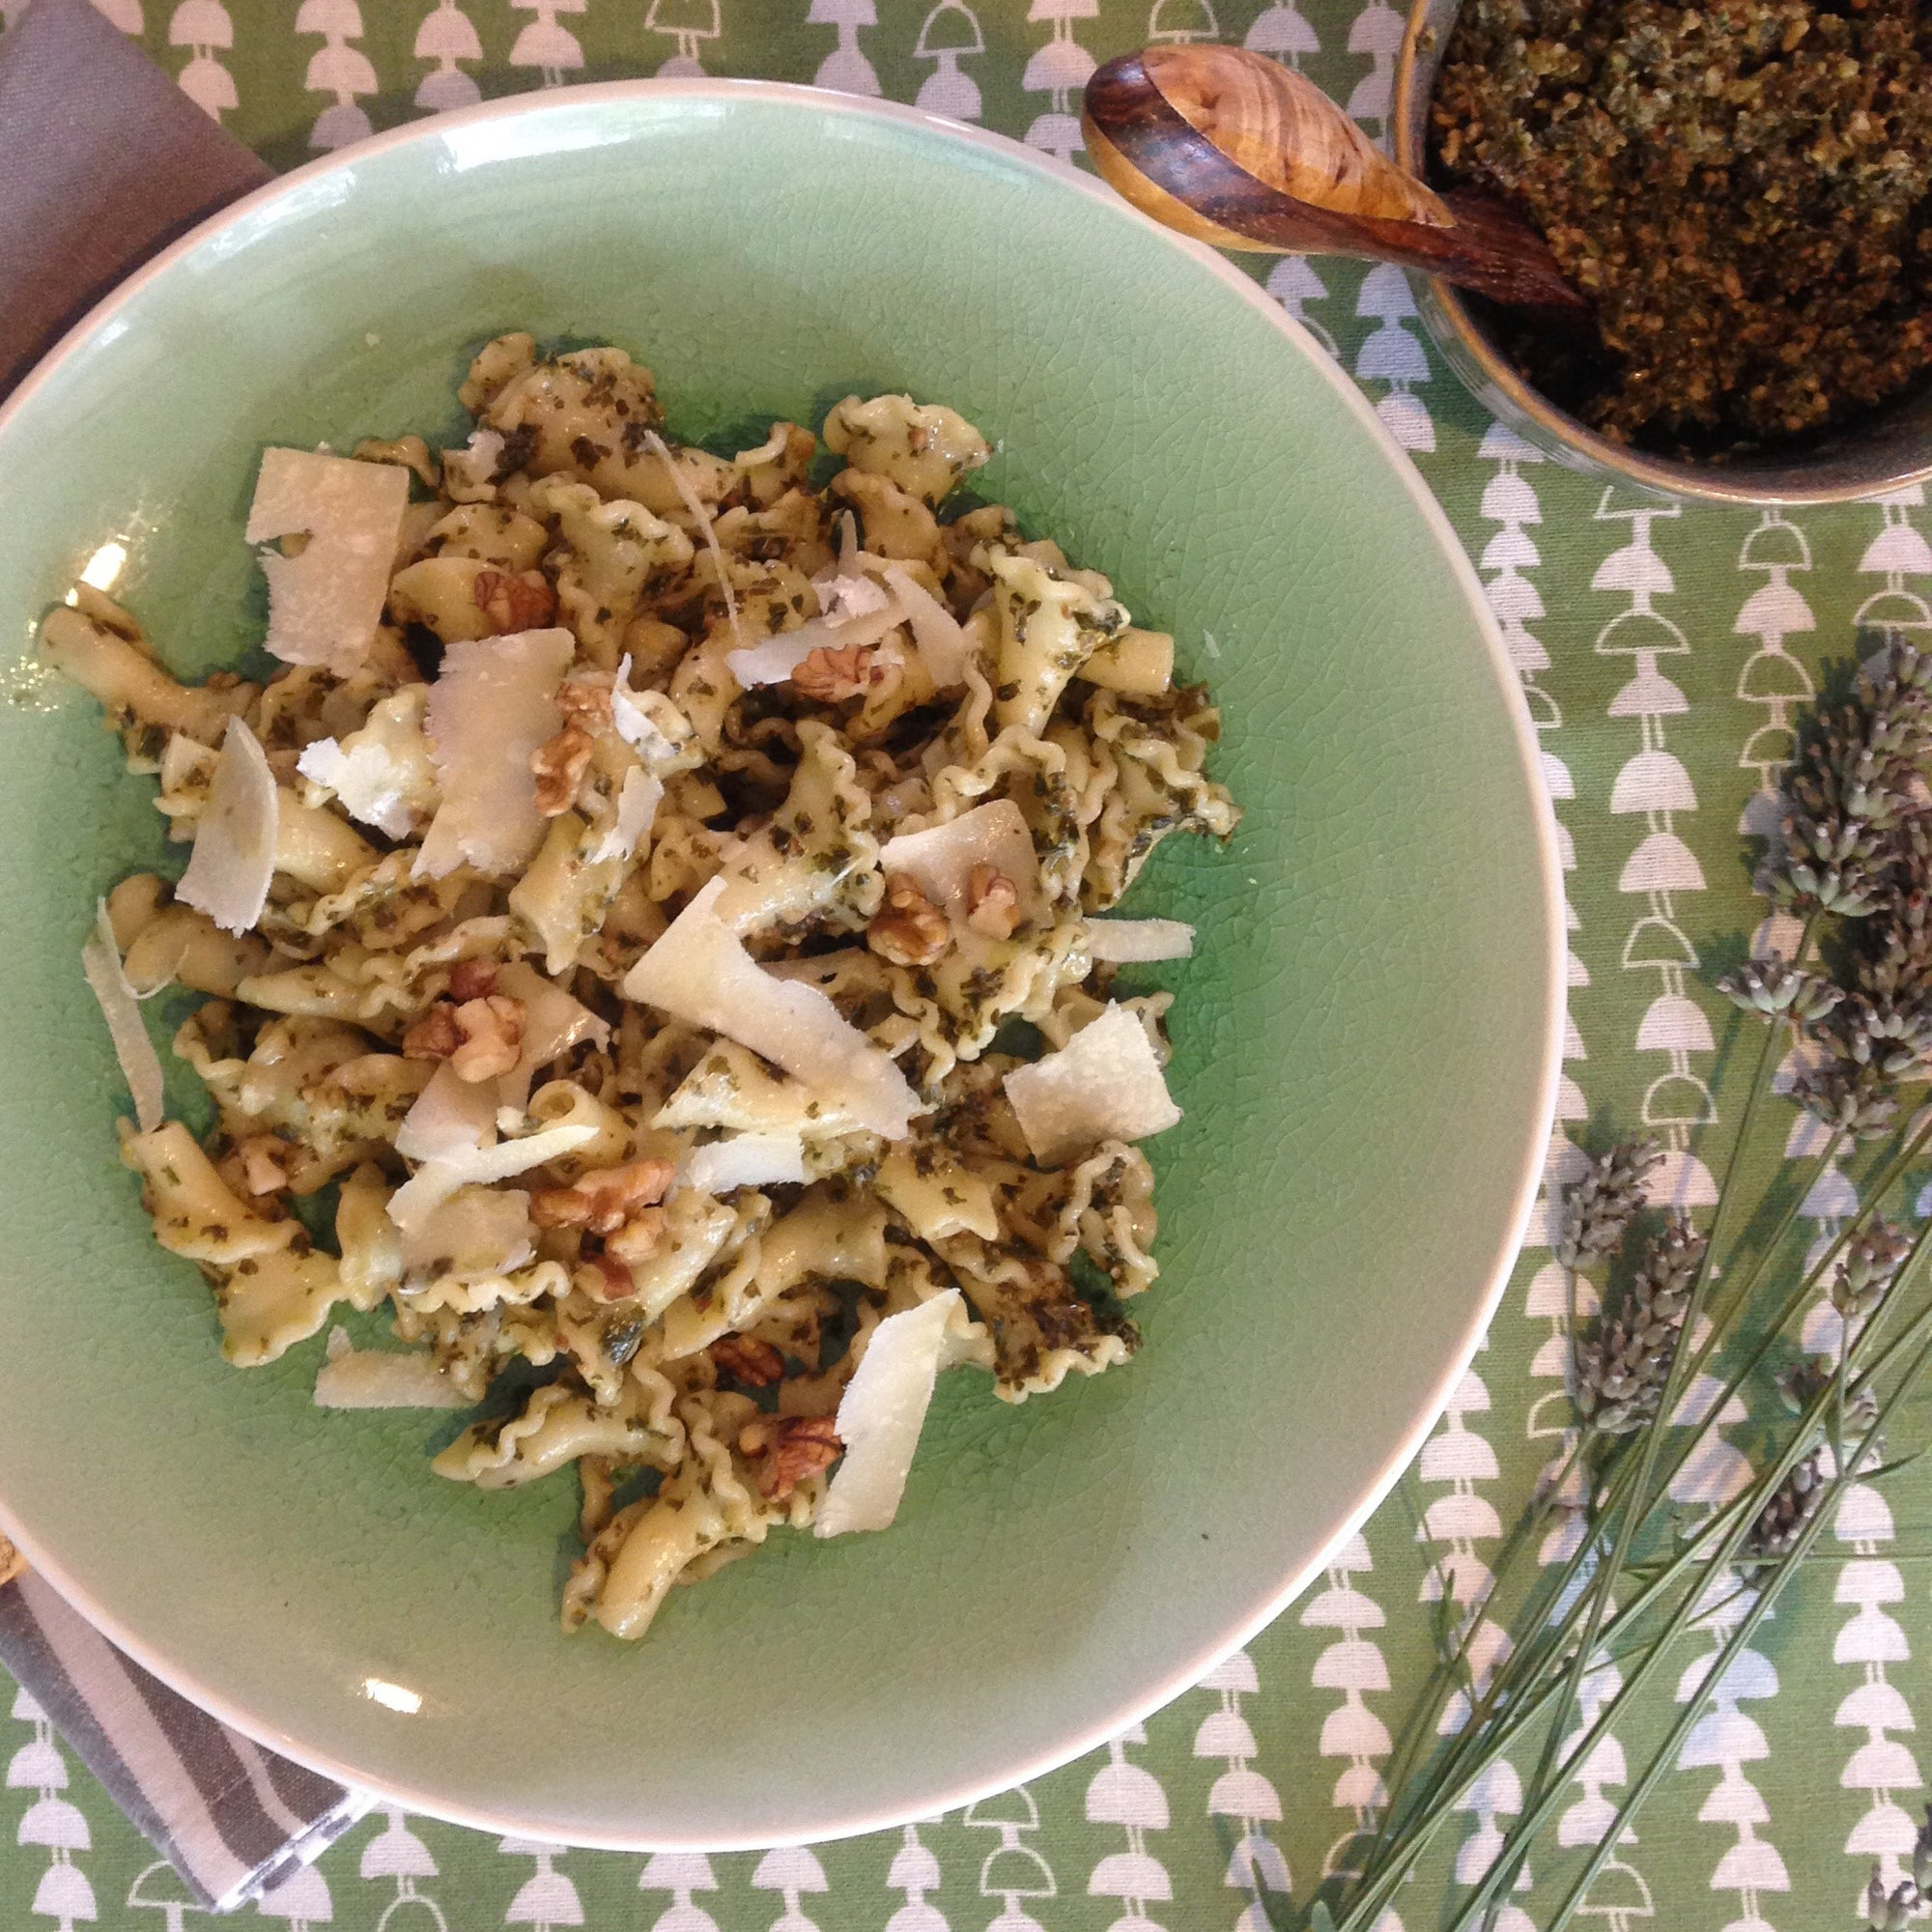 Kale and toasted walnut pesto with pasta on hopi fabric by the meter from étoile home